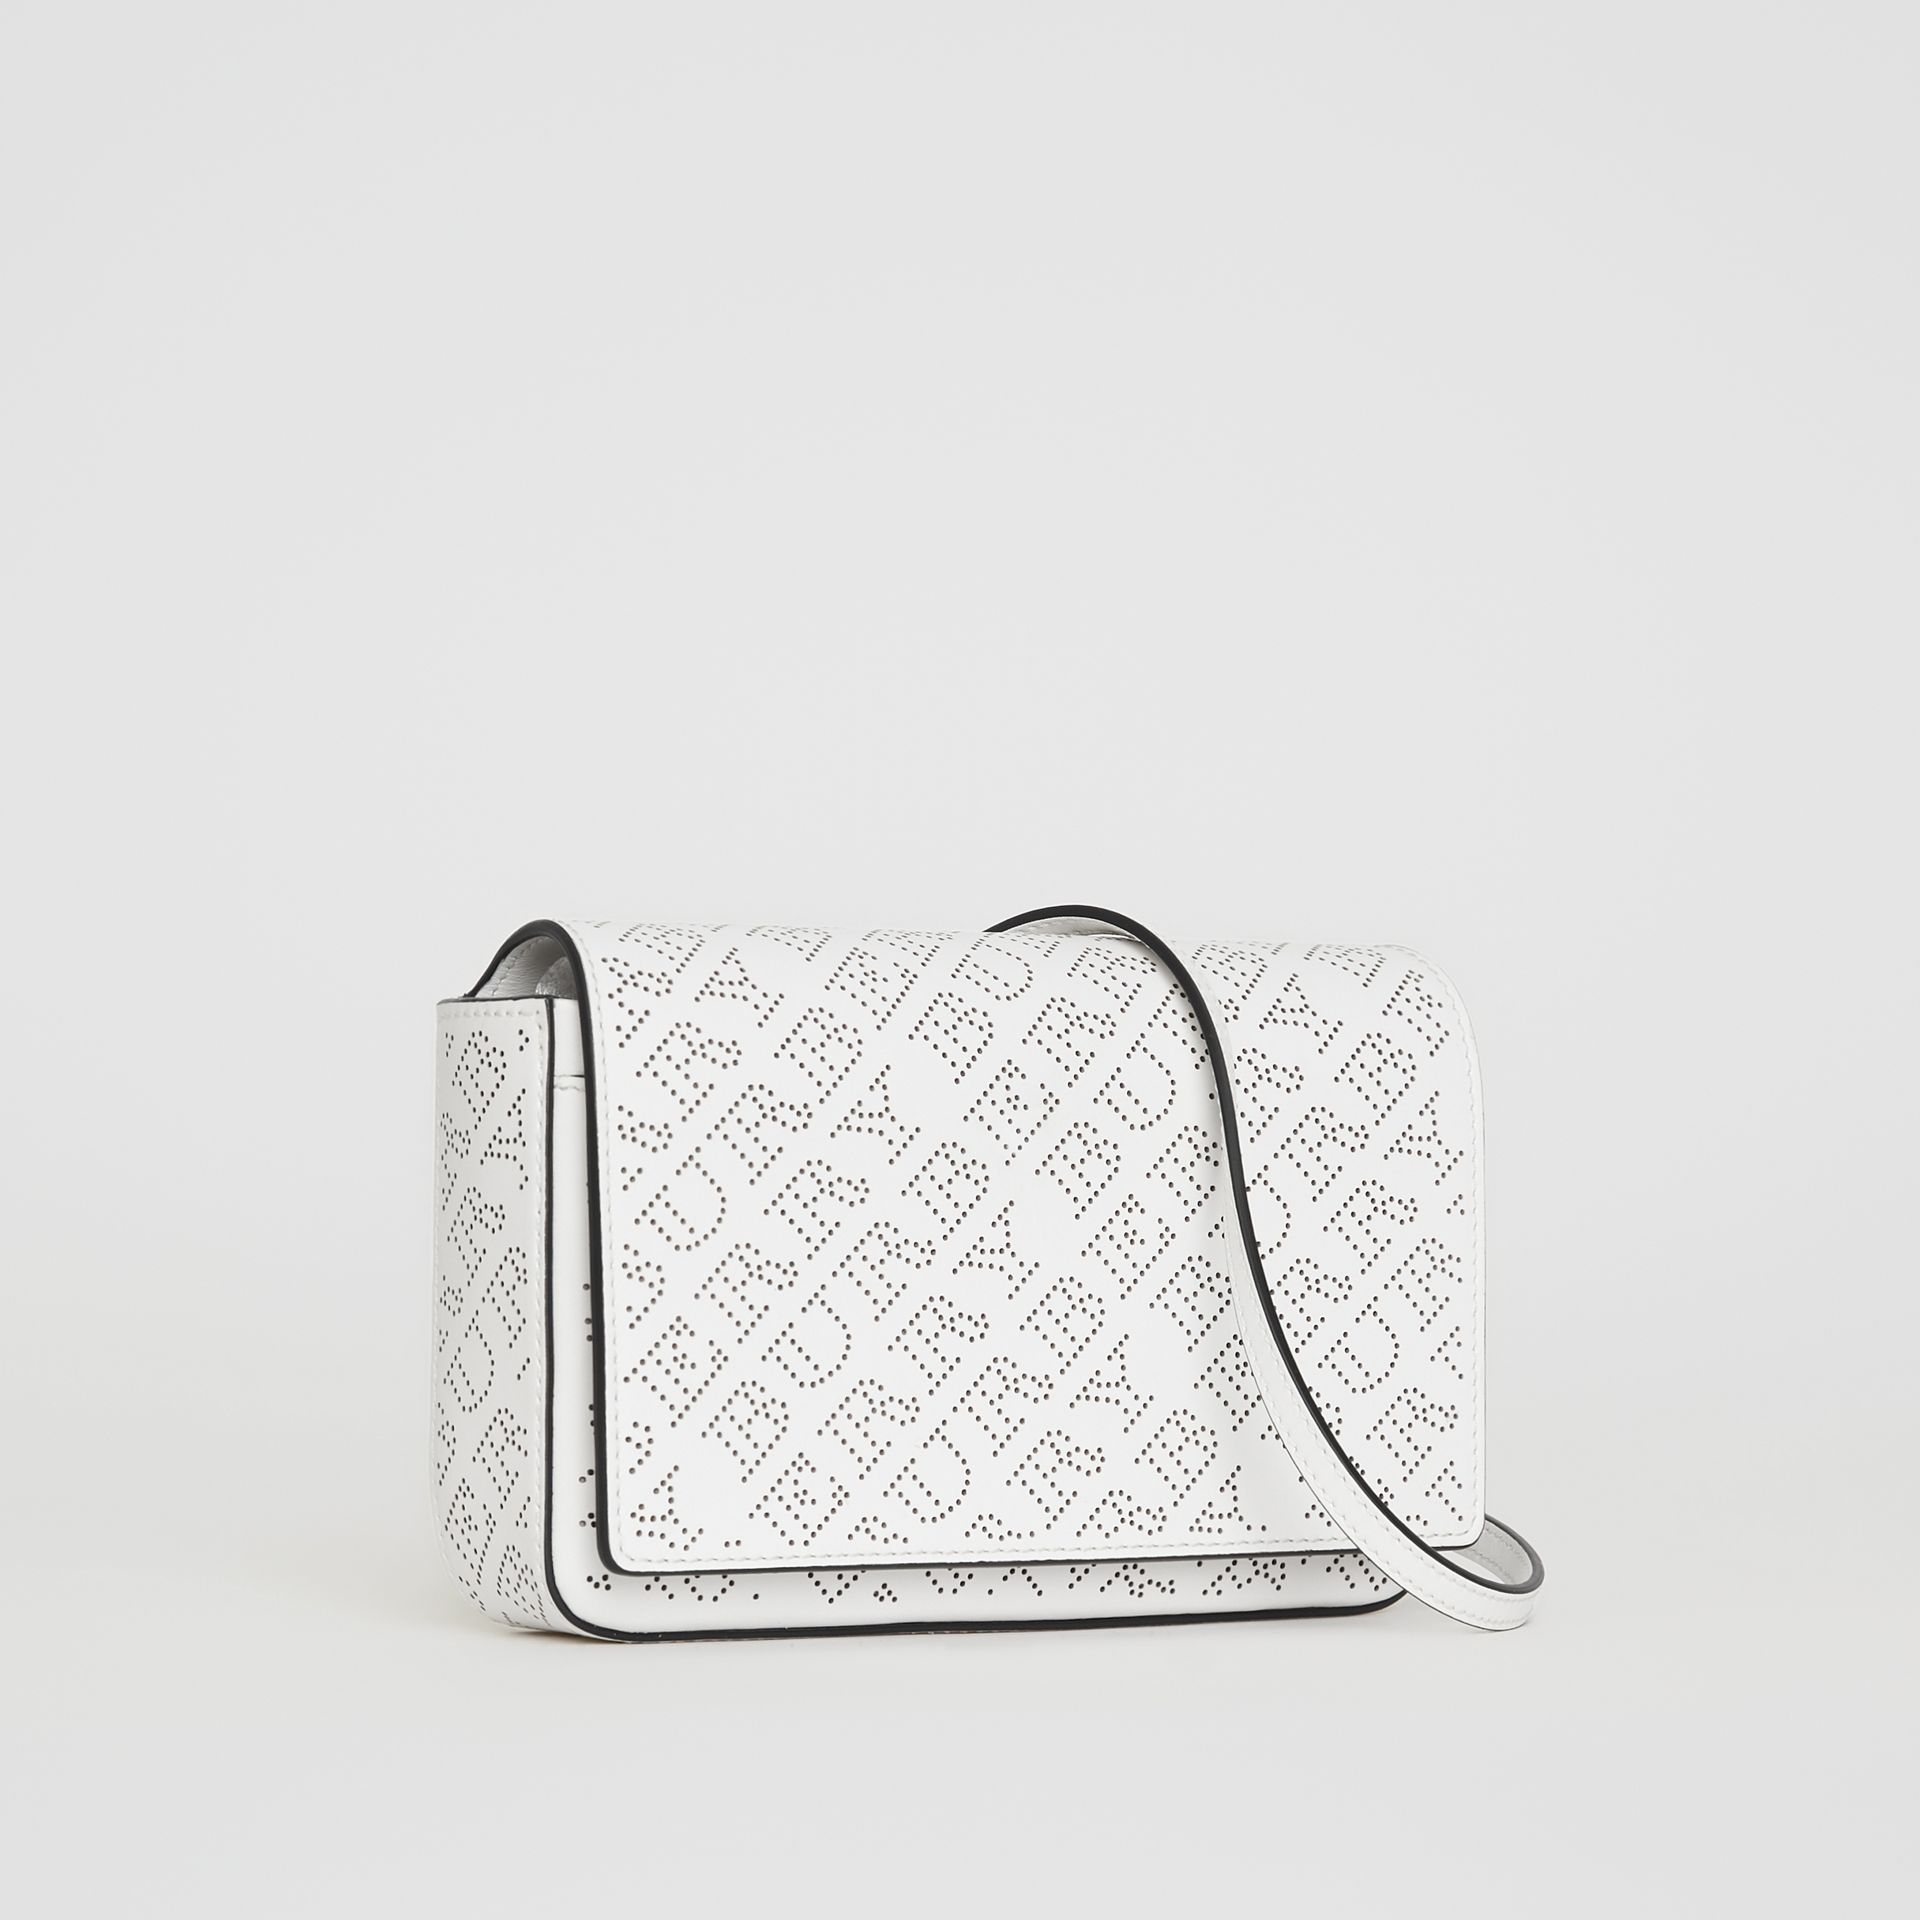 Perforated Logo Leather Wallet with Detachable Strap in White - Women | Burberry - gallery image 4